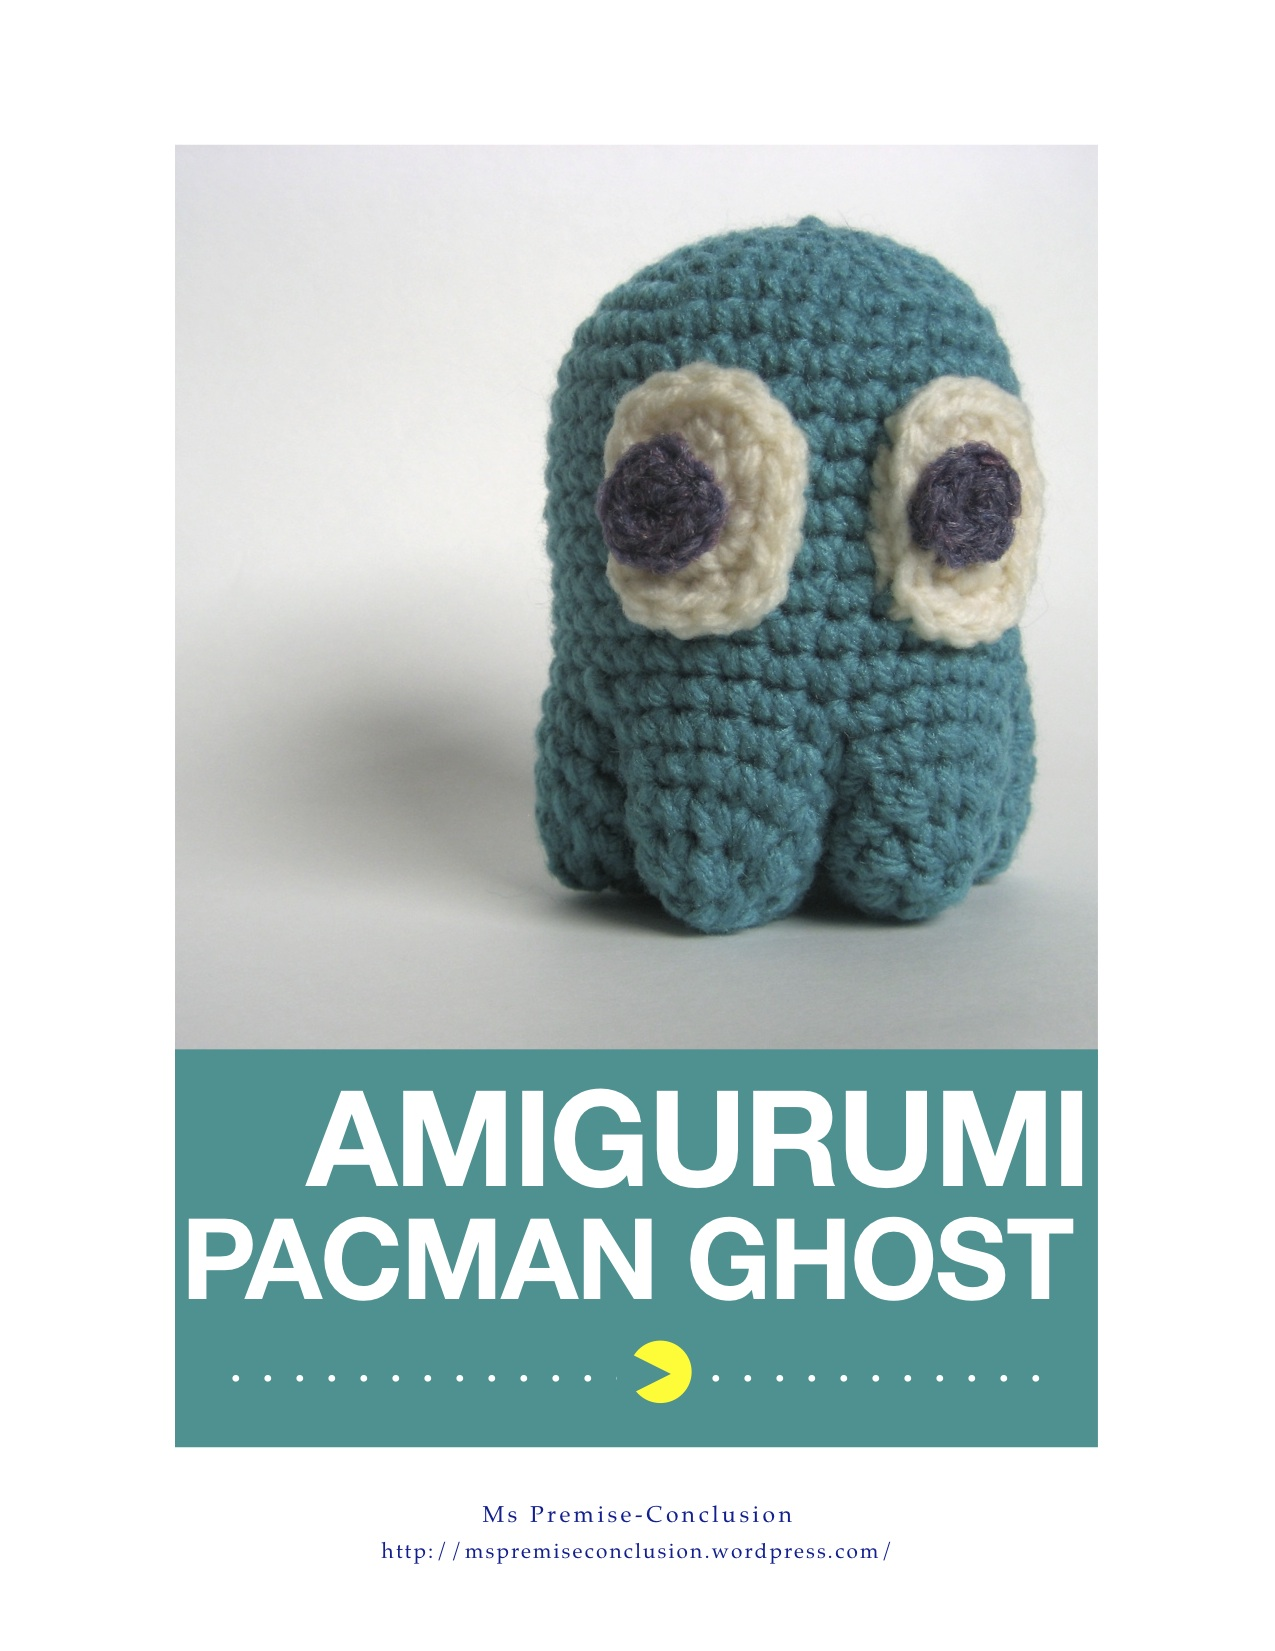 Amigurumi Ghost : Pacman Ghost Pattern! Ms Premise-Conclusion